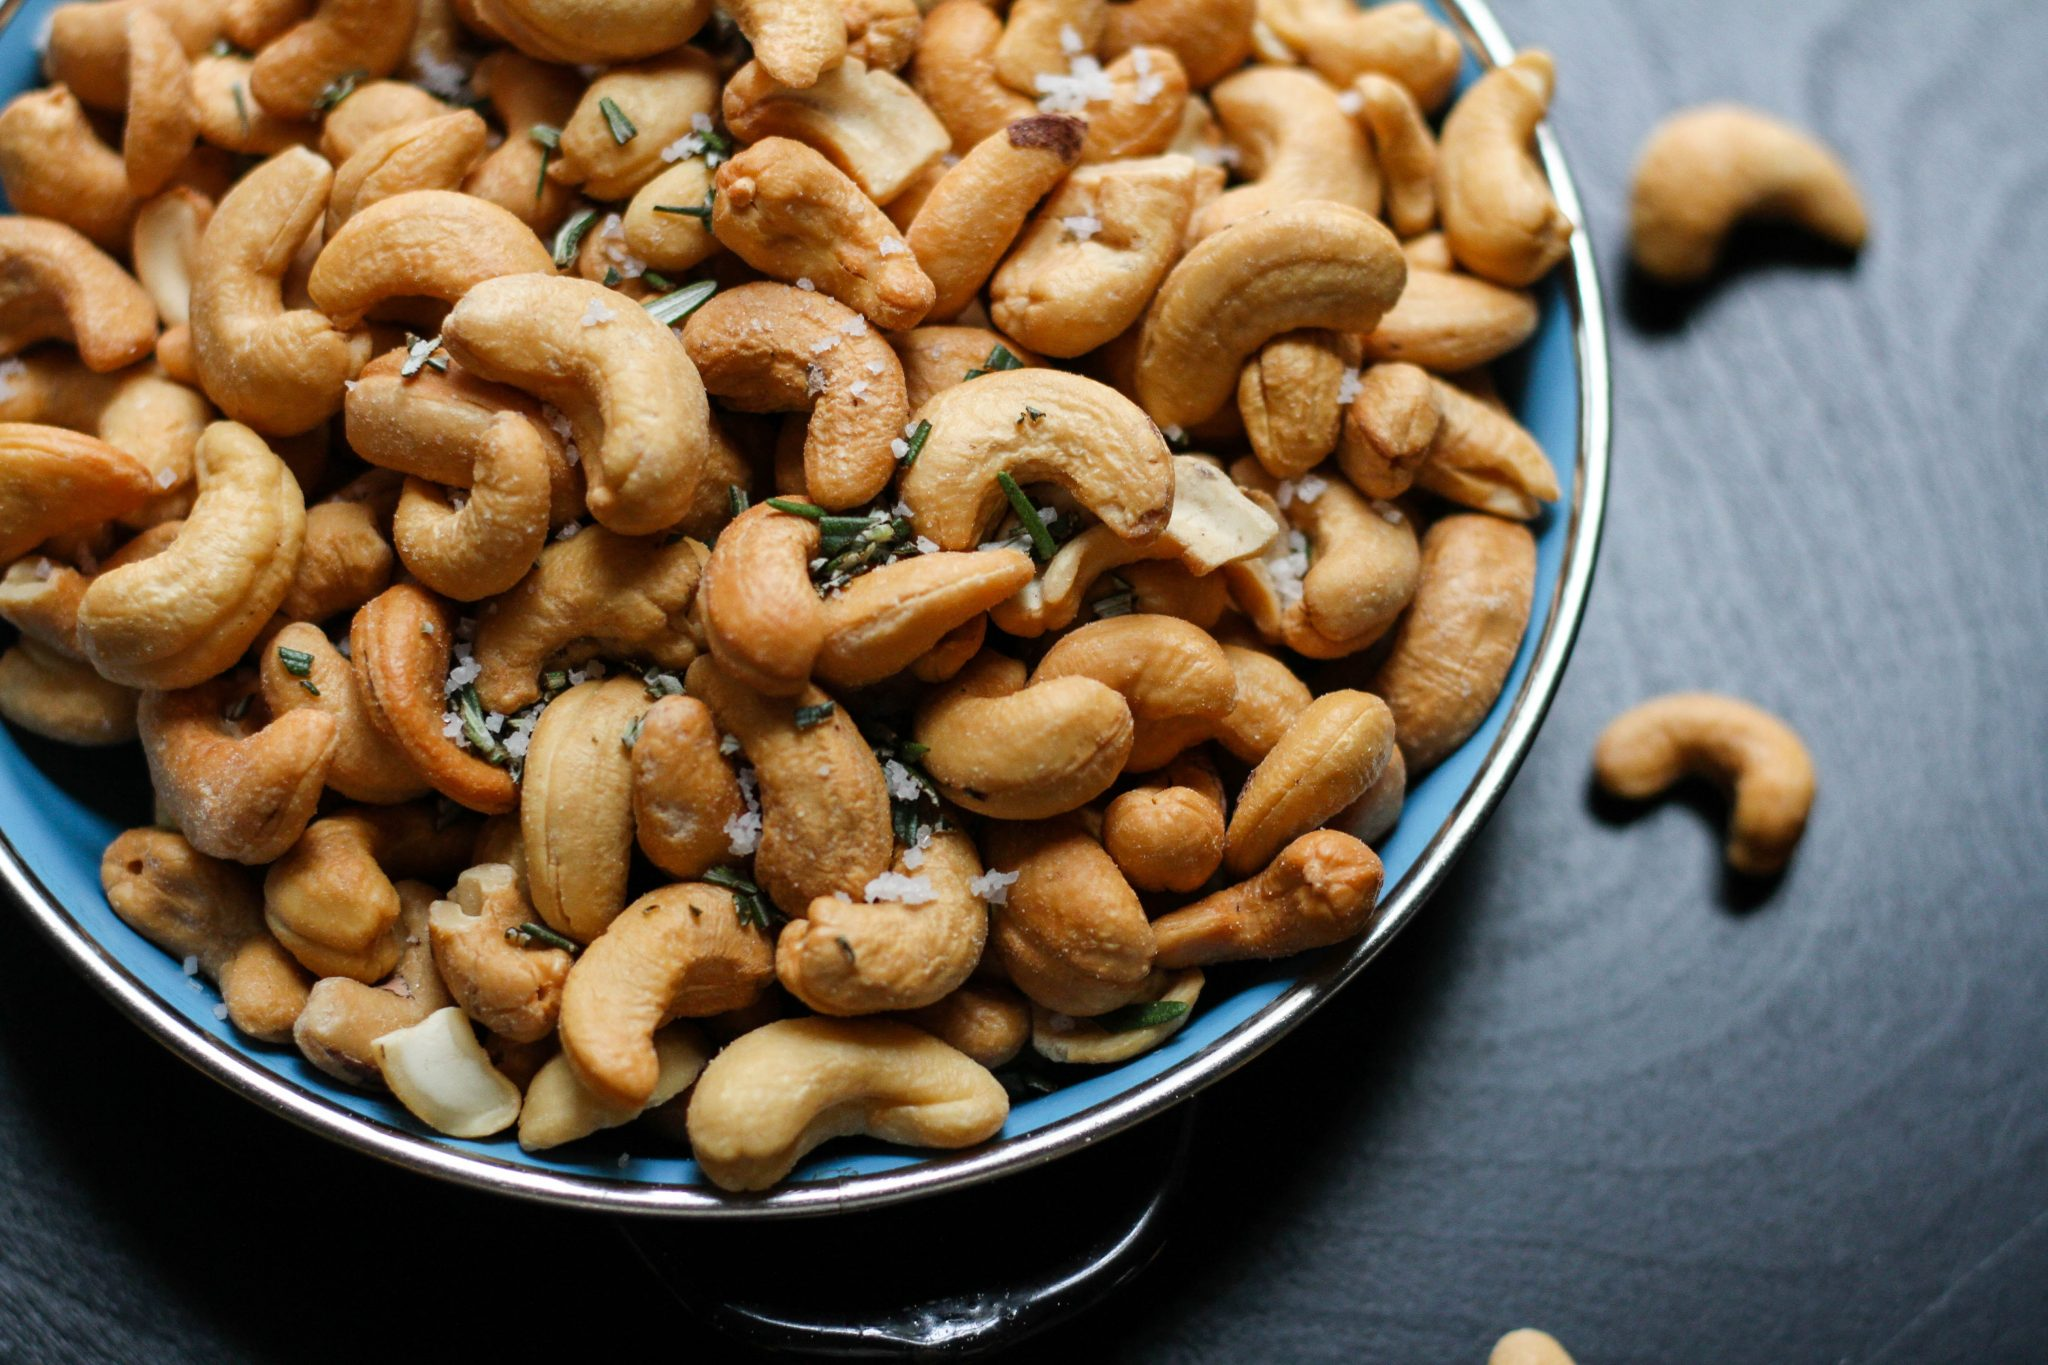 Cashews are a good source of iron for heart health